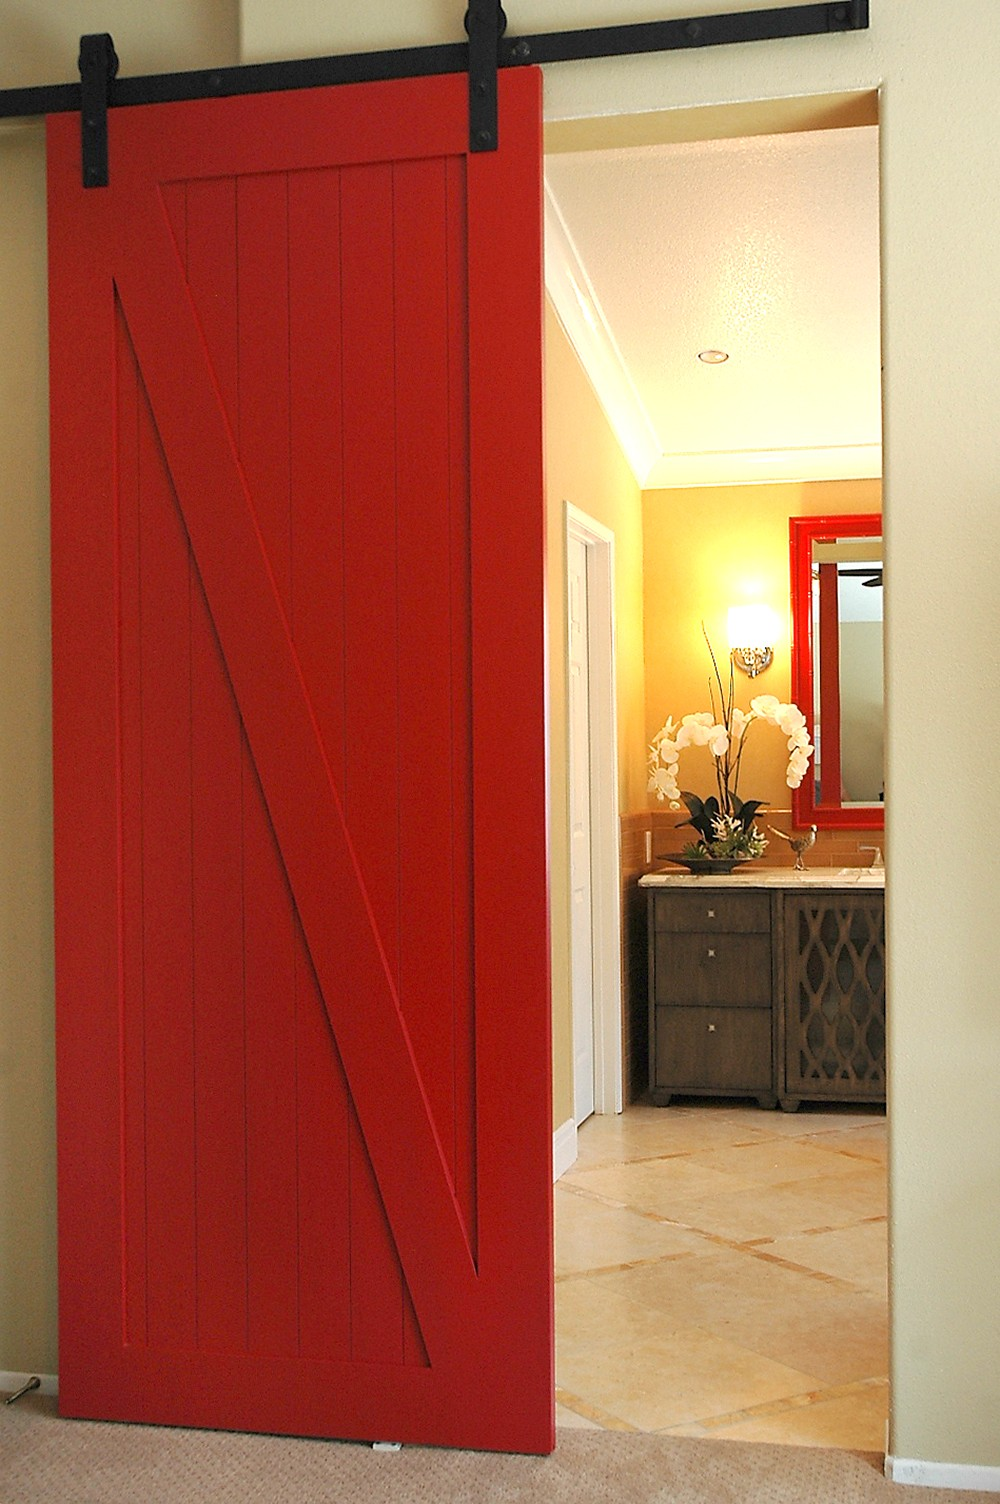 Sliding Modern Barn Door Hardware And Wood Door Buy Door